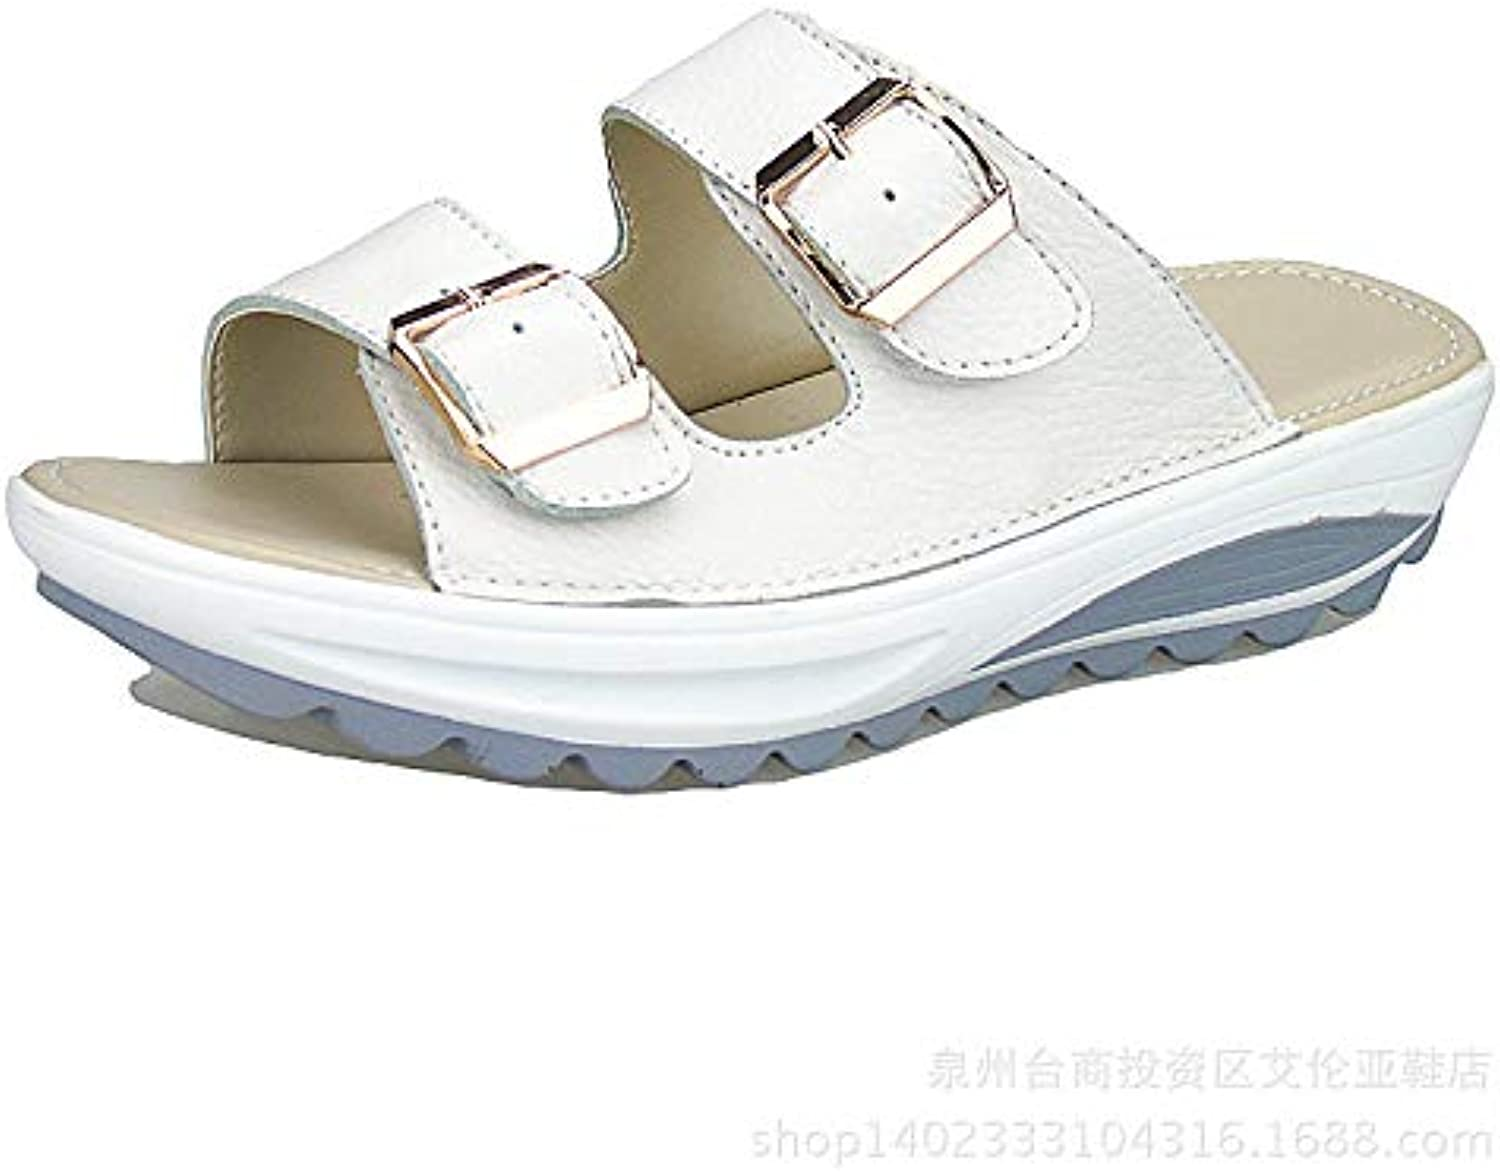 2ea7733ac8b190 ZHRUI Buckle Straps Adjustable Sandals for Adjustable Women nhta-30292  Sandals Leather Platform Rocker sole Shoes (Color : White, Size : UK.